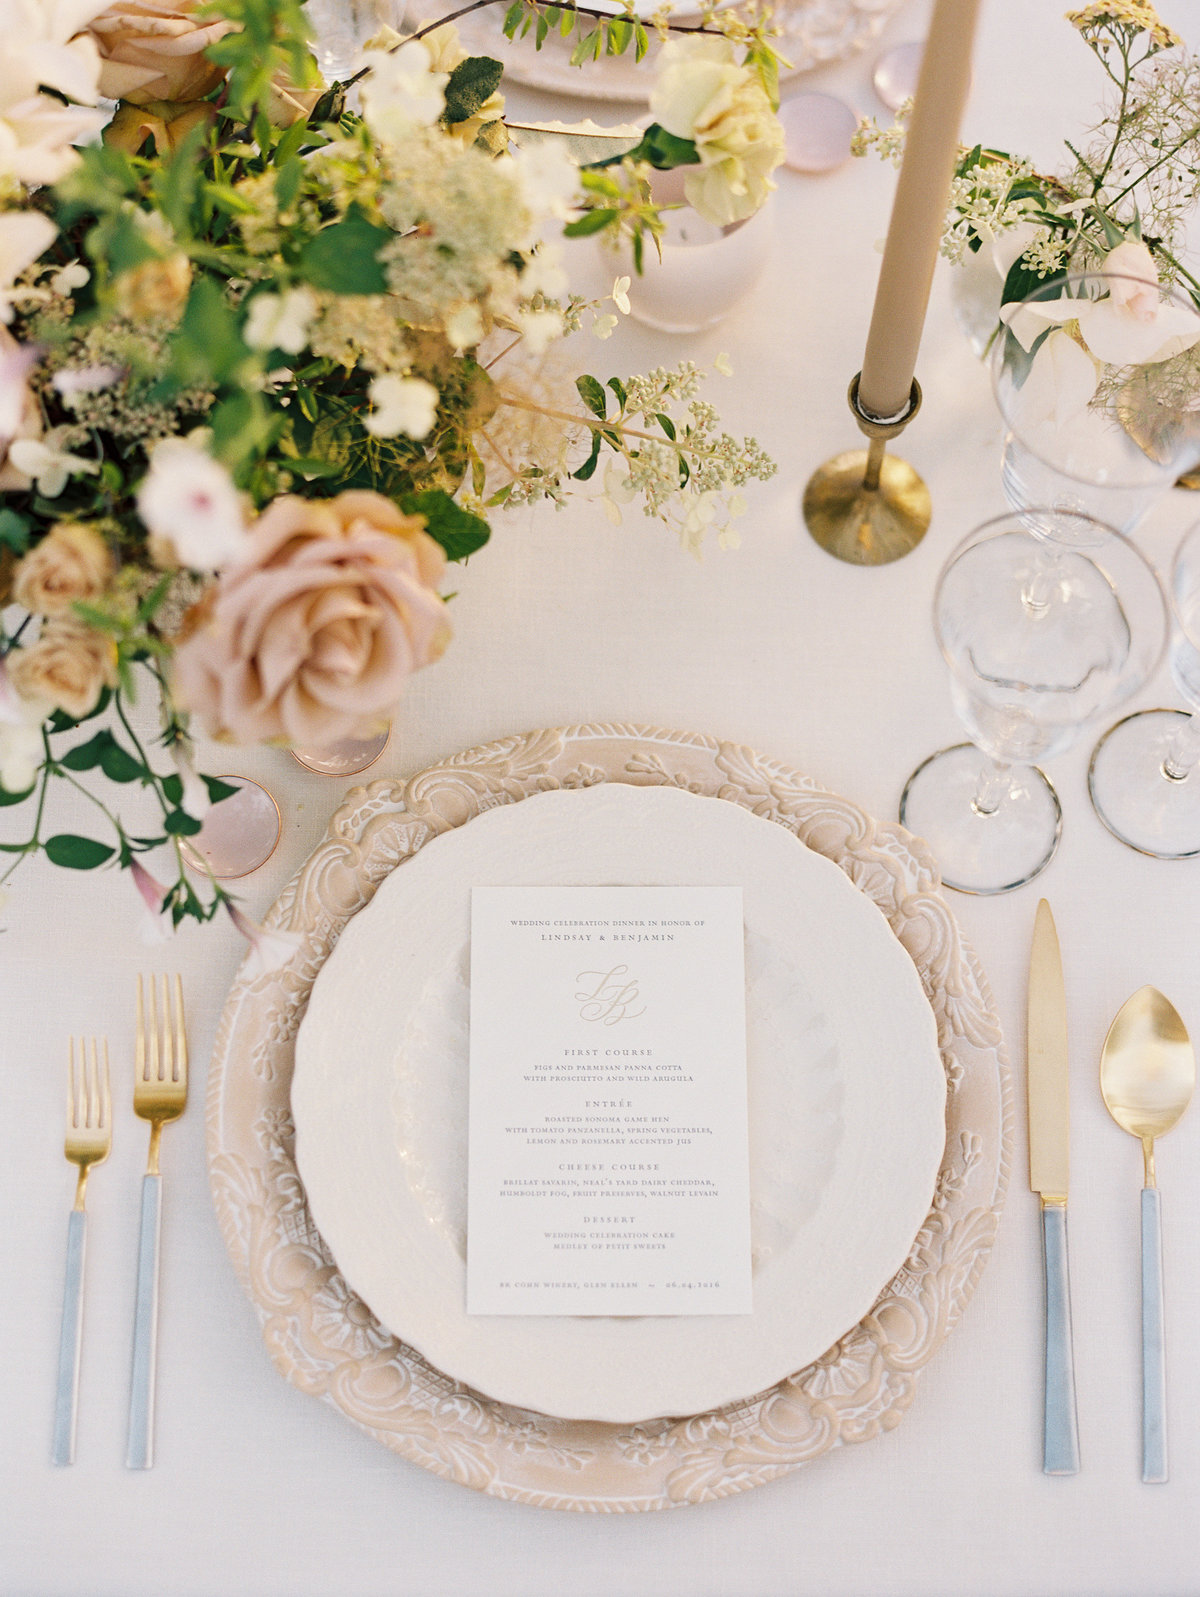 Tablescape for wedding by Jenny Schneider Events in Napa Valley, California. Photo by Eric Kelley Photography.